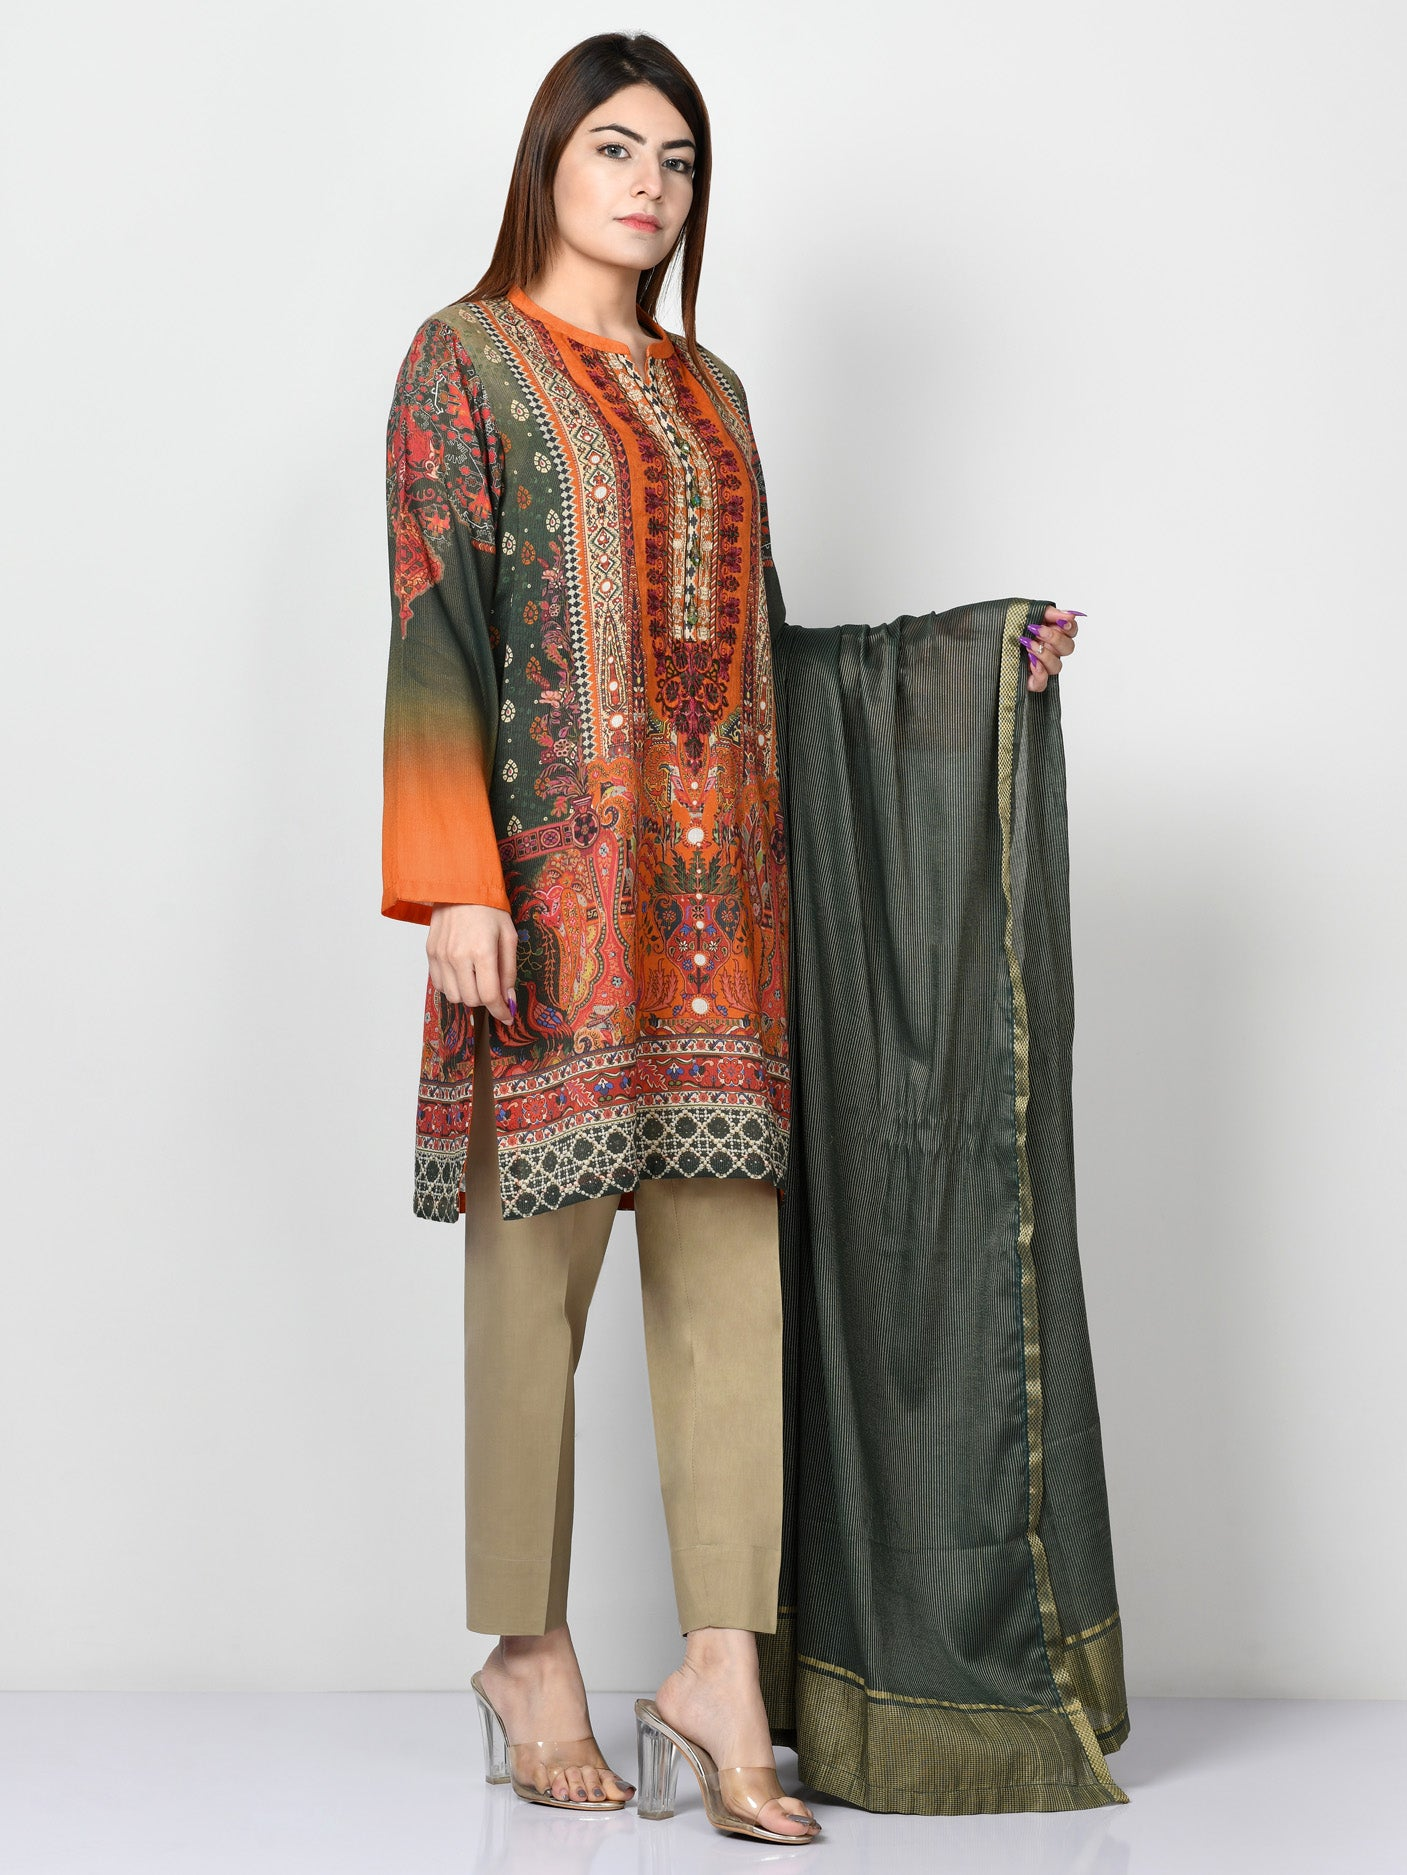 Embroidered Masoori Lawn Suit